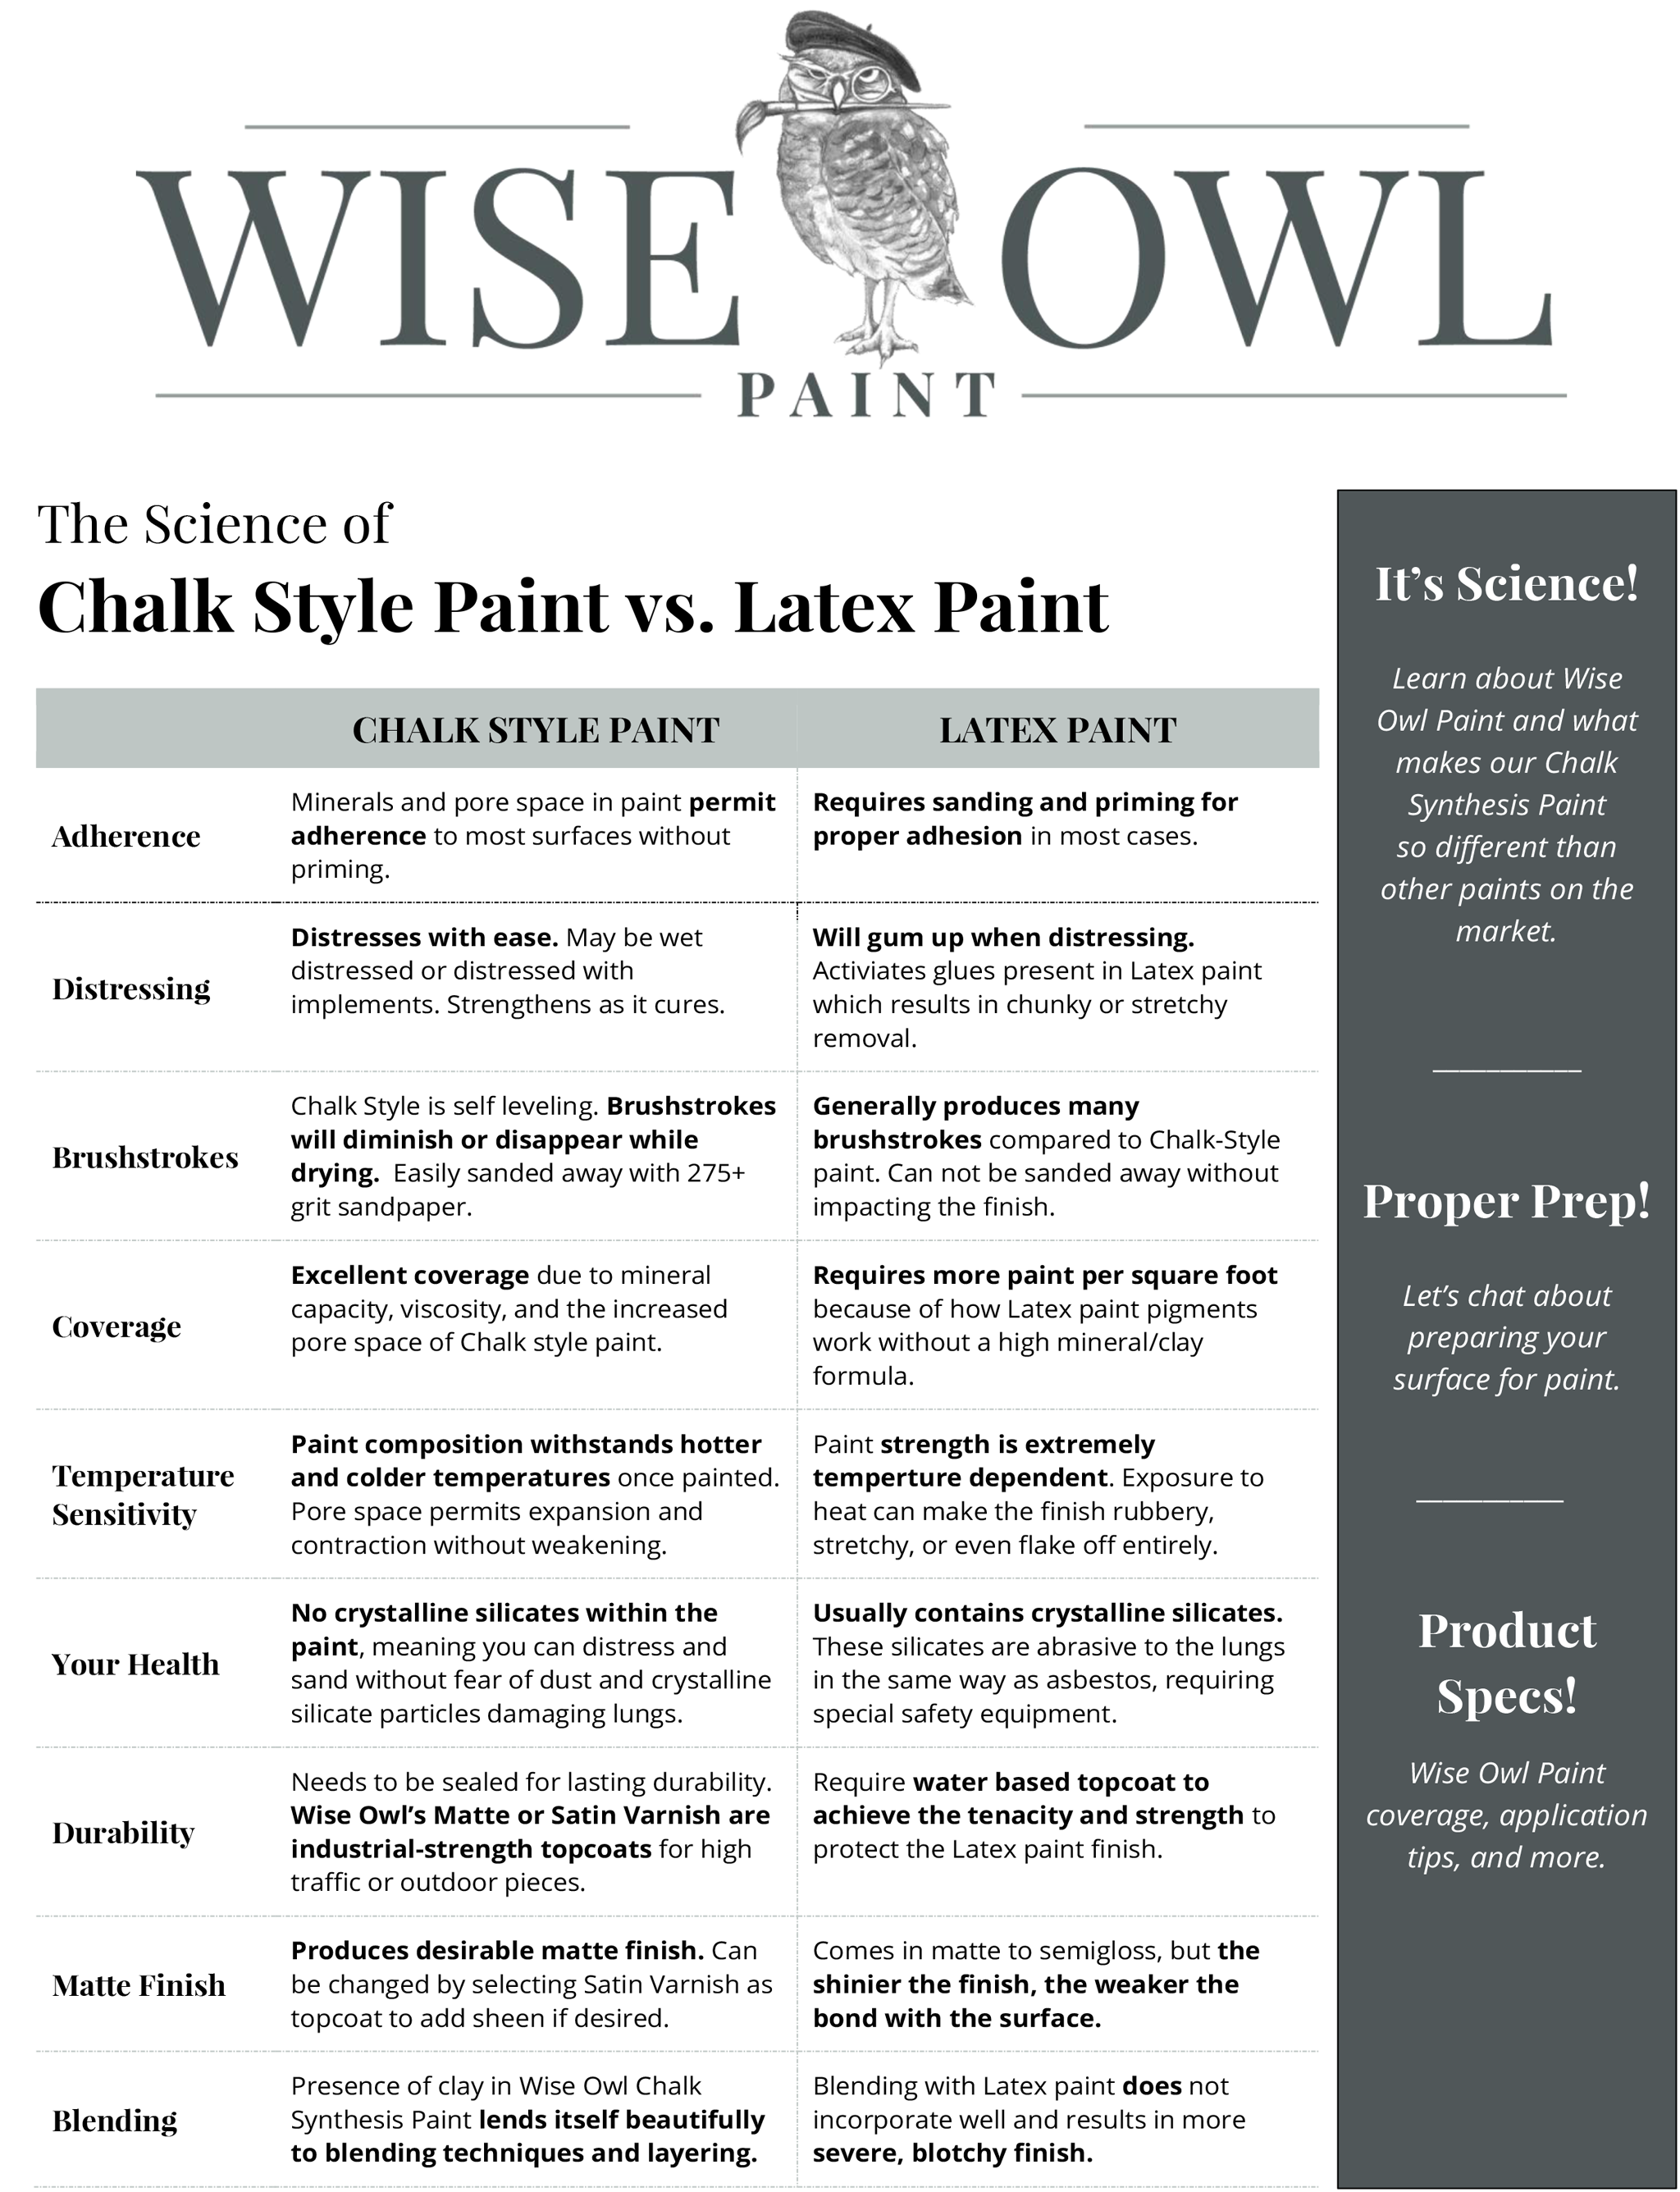 Guide to Wise Owl Paint Products.